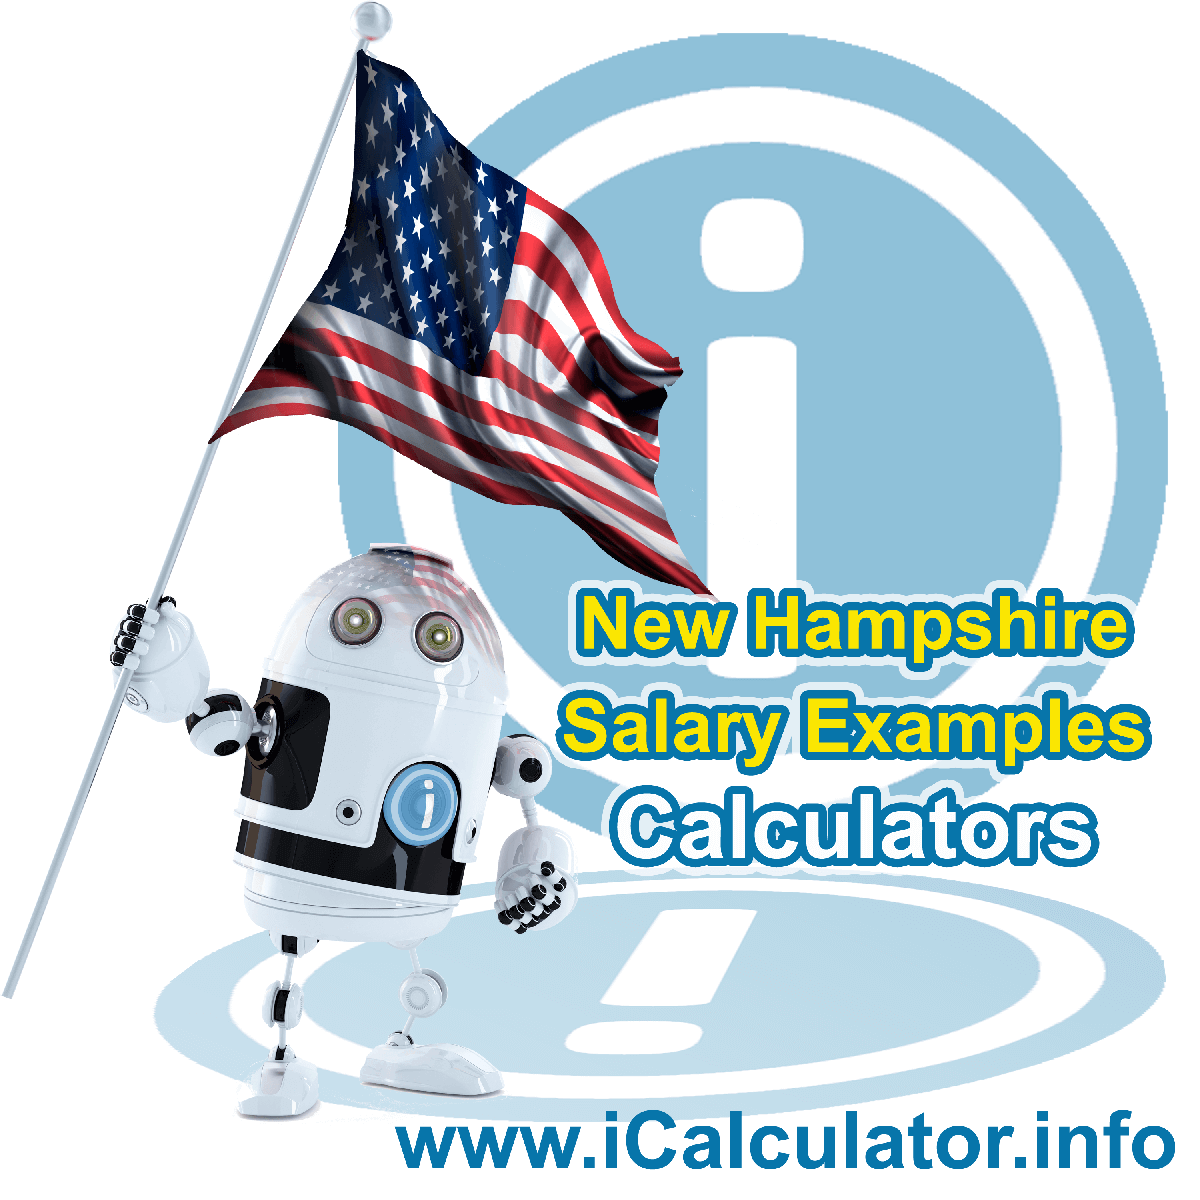 New Hampshire Salary Example for $65,000.00 in 2020 | iCalculator | $65,000.00 salary example for employee and employer paying New Hampshire State tincome taxes. Detailed salary after tax calculation including New Hampshire State Tax, Federal State Tax, Medicare Deductions, Social Security, Capital Gains and other income tax and salary deductions complete with supporting New Hampshire state tax tables